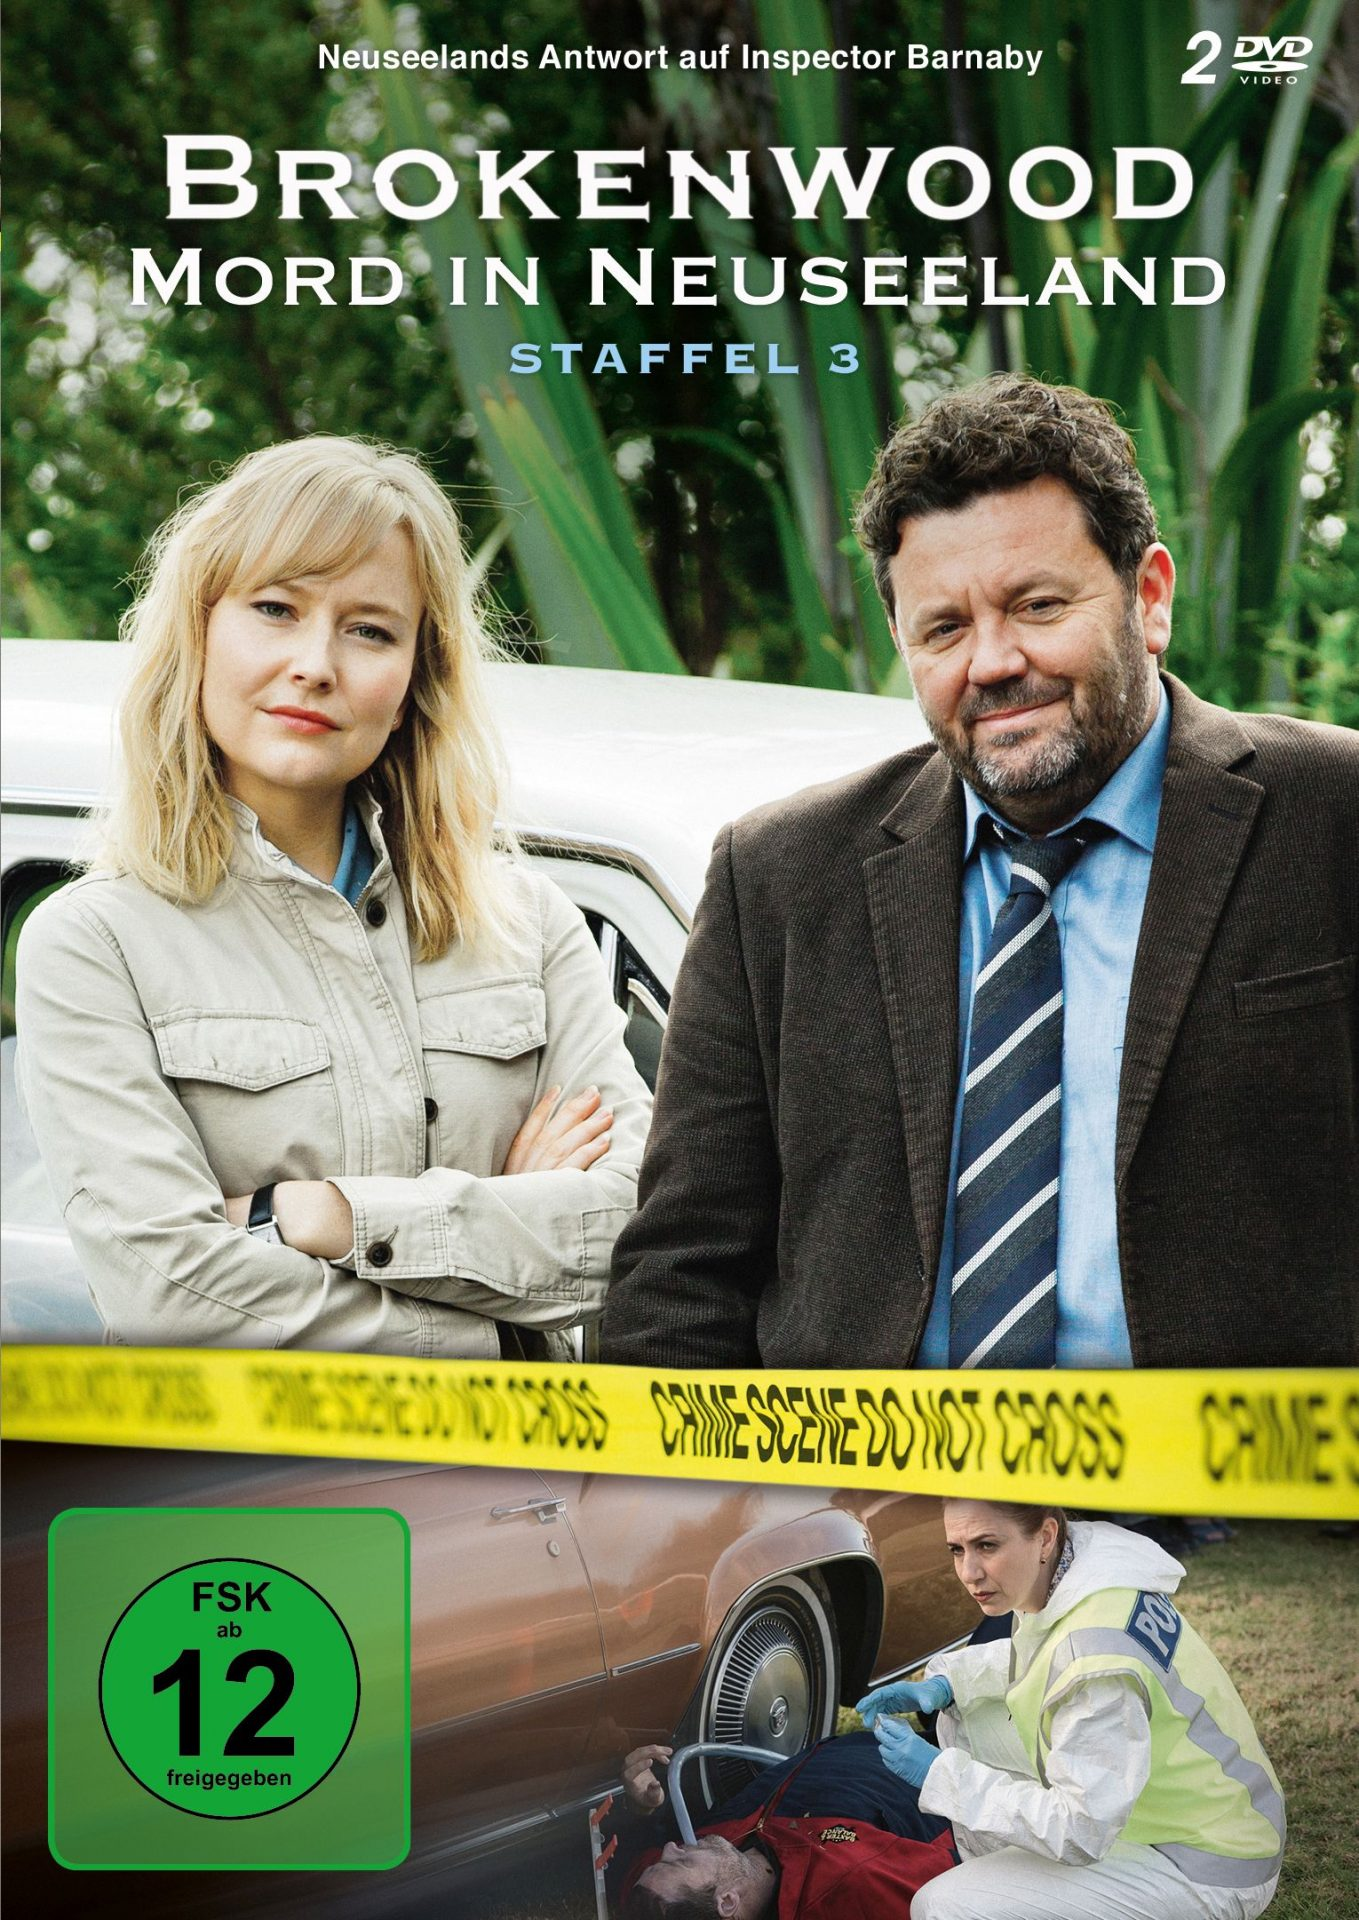 Brokenwood – Mord in Neuseeland Staffel 3